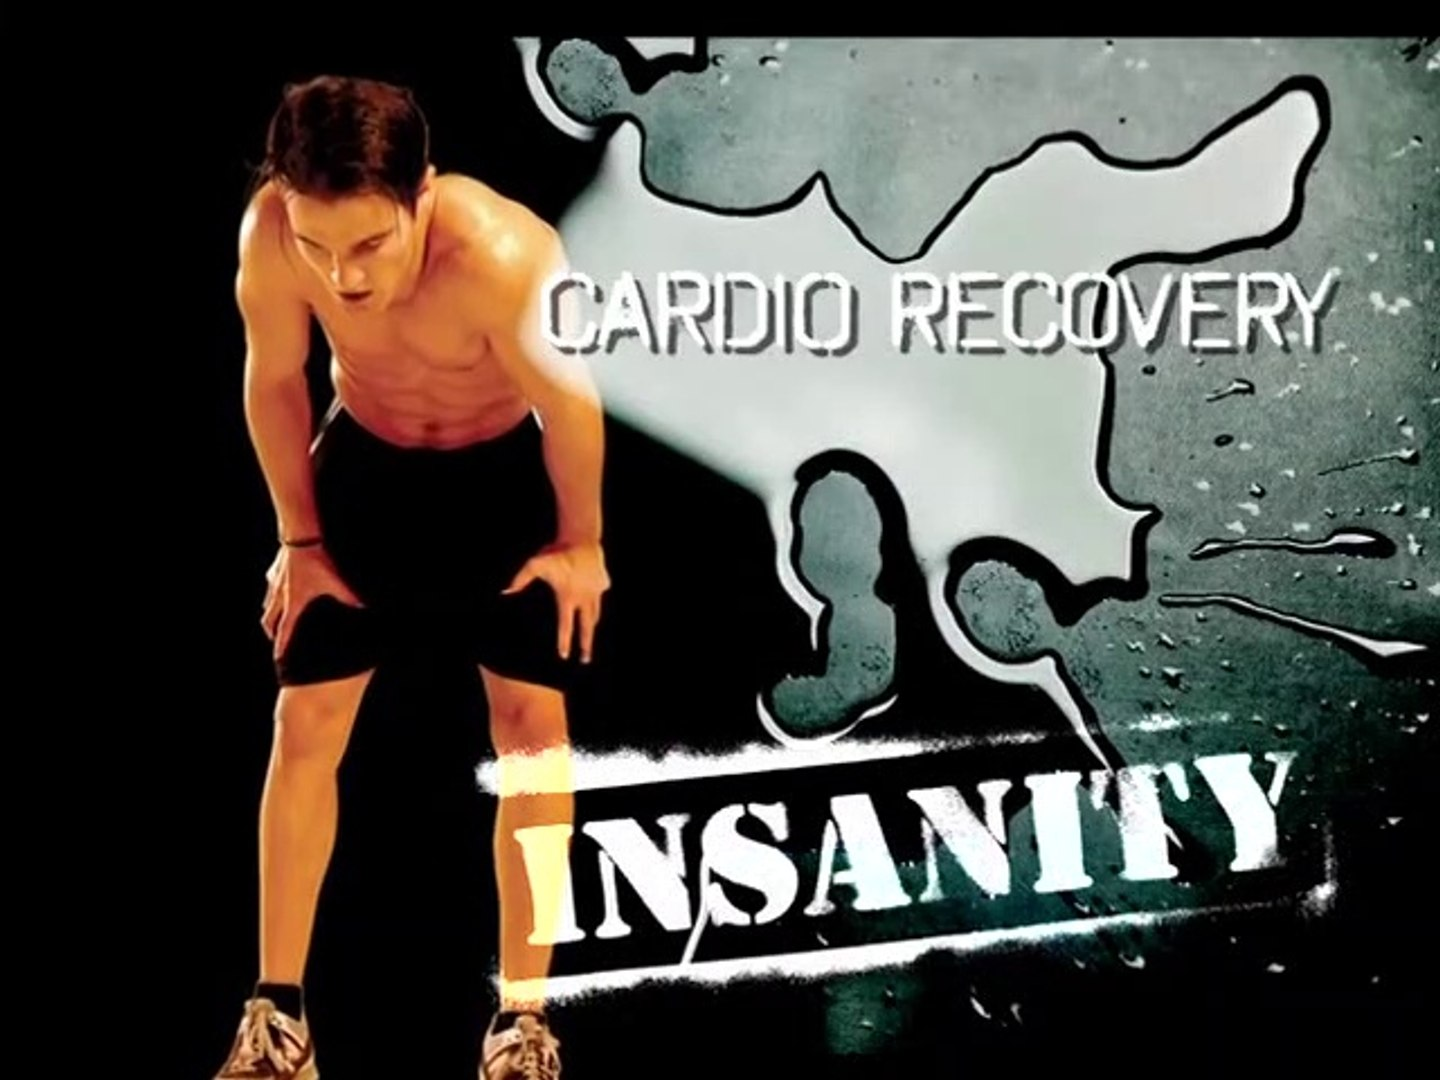 How long is cardio recovery insanity?